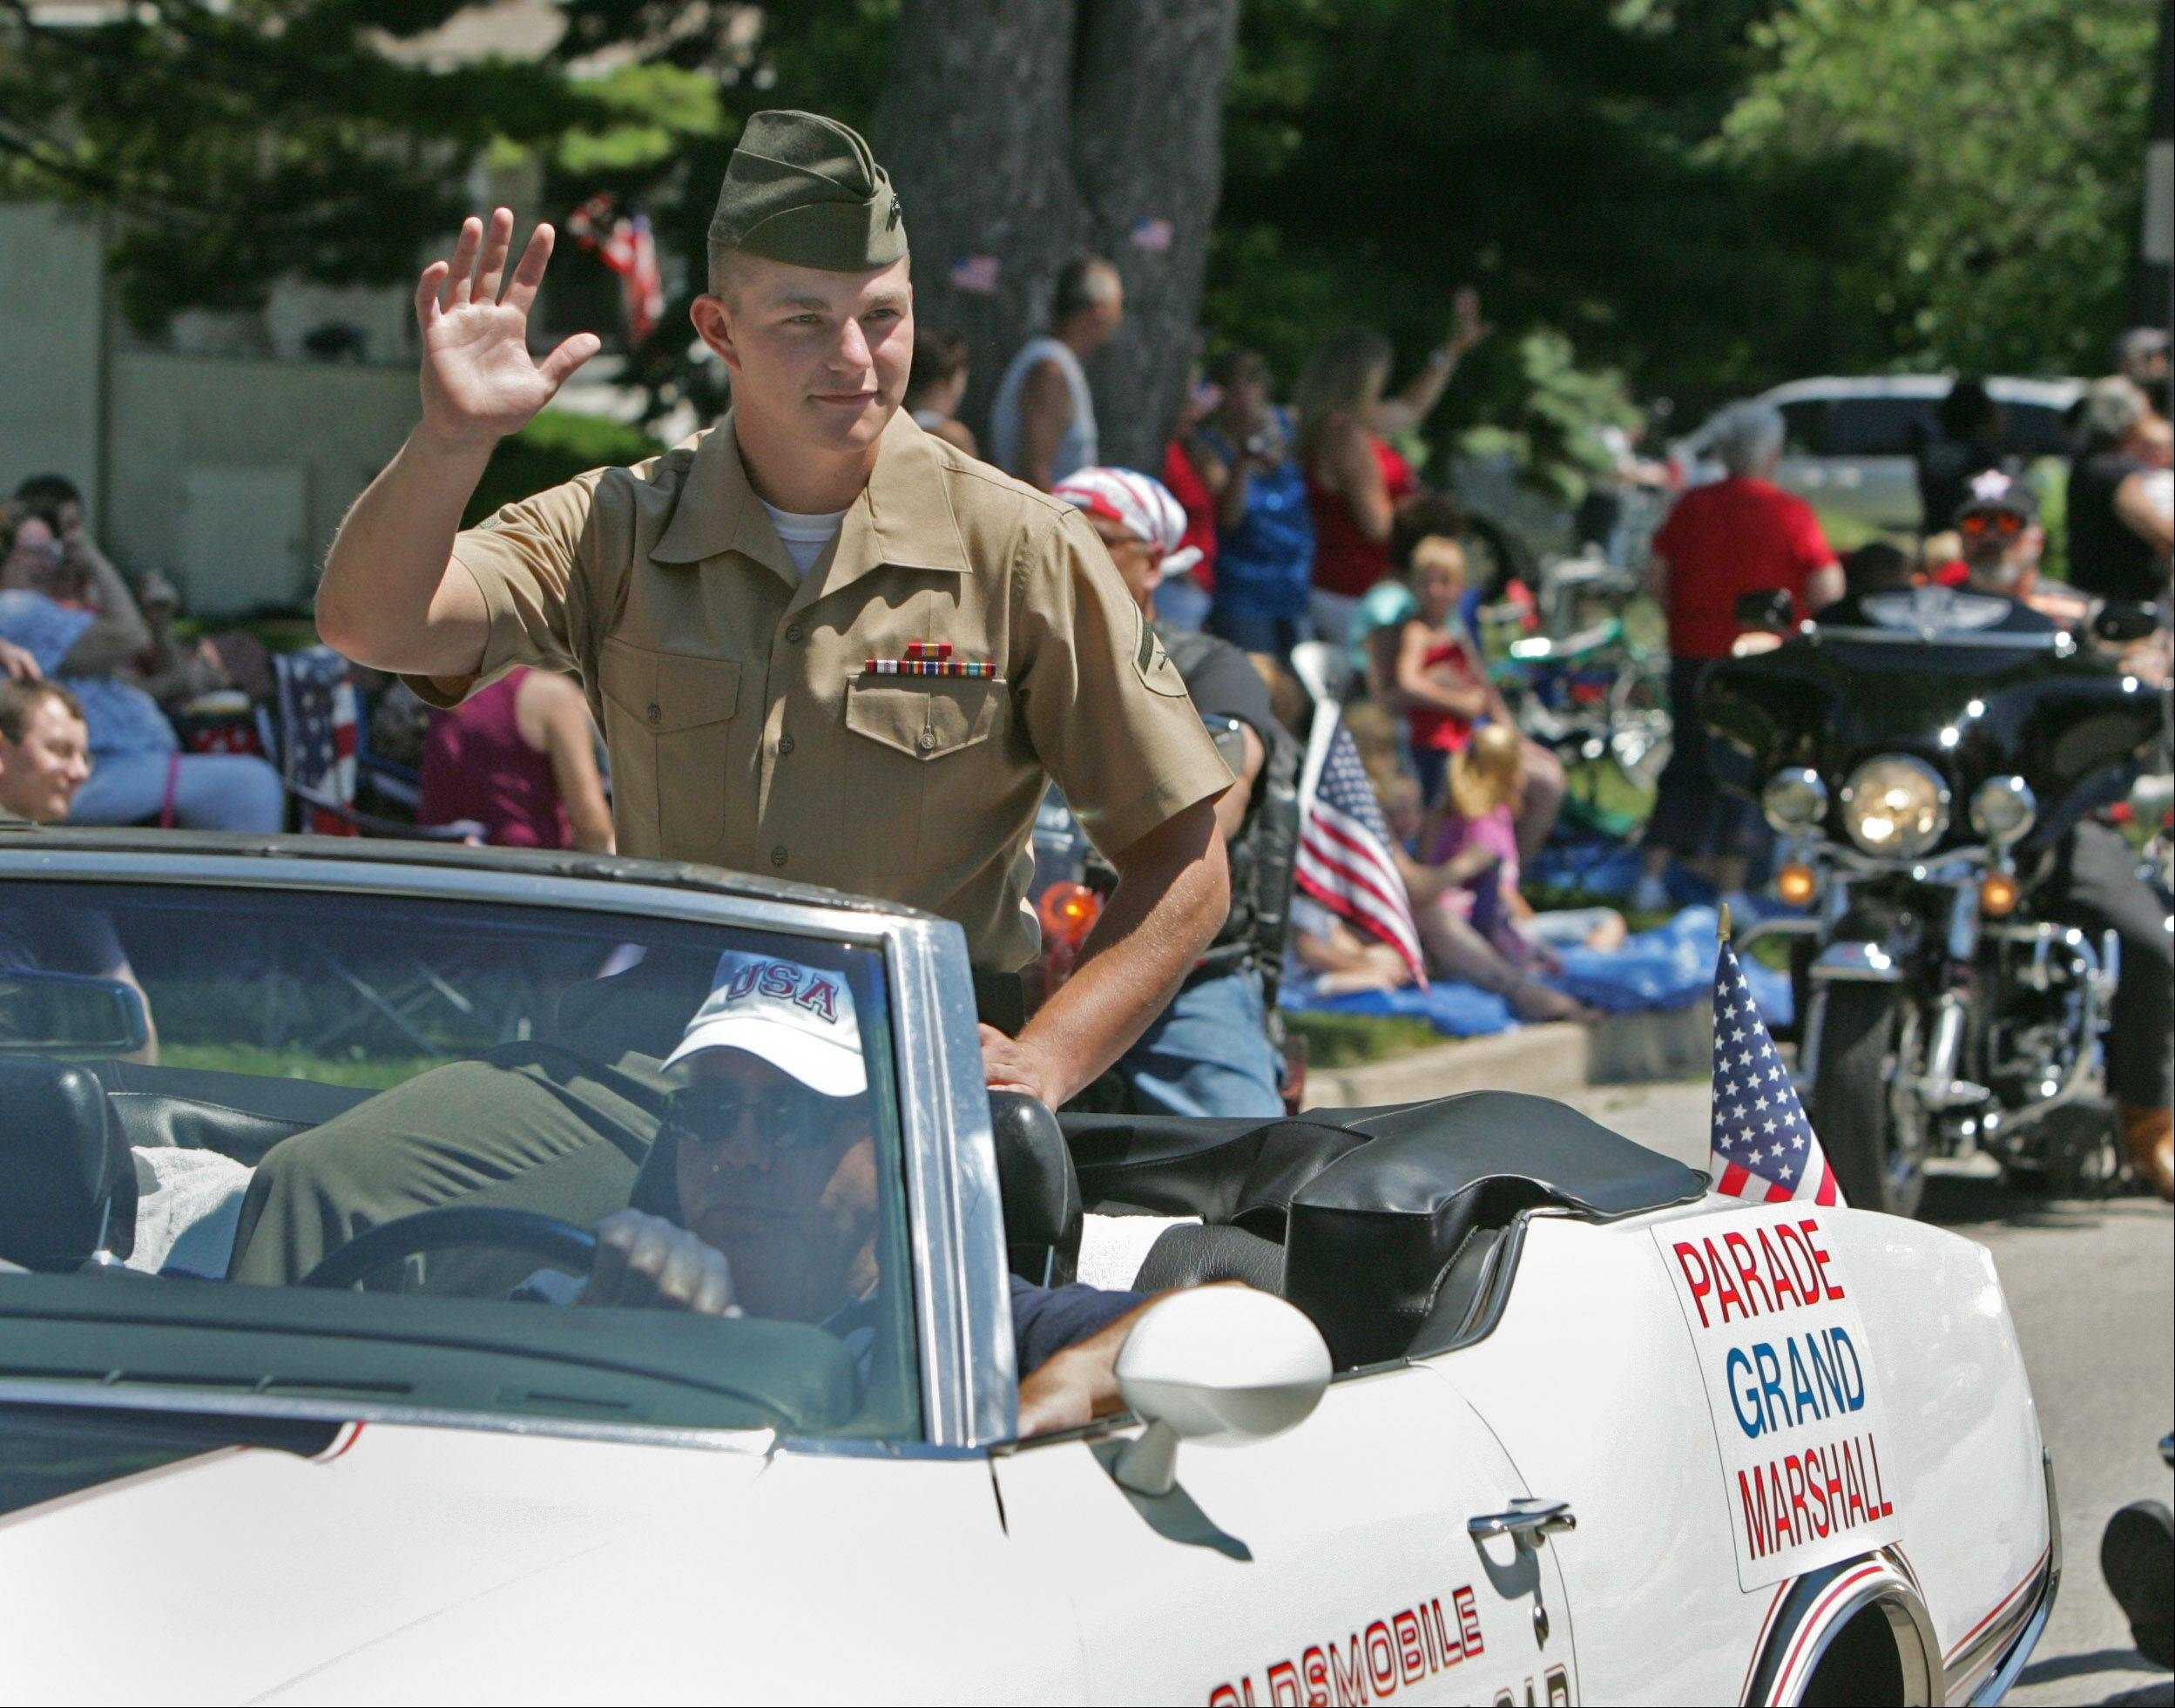 Marine, Andrew Pickerill, is the grand marshal of the Villa Park Fourth of July parade. He is home for one month, before returning to Afghanistan.